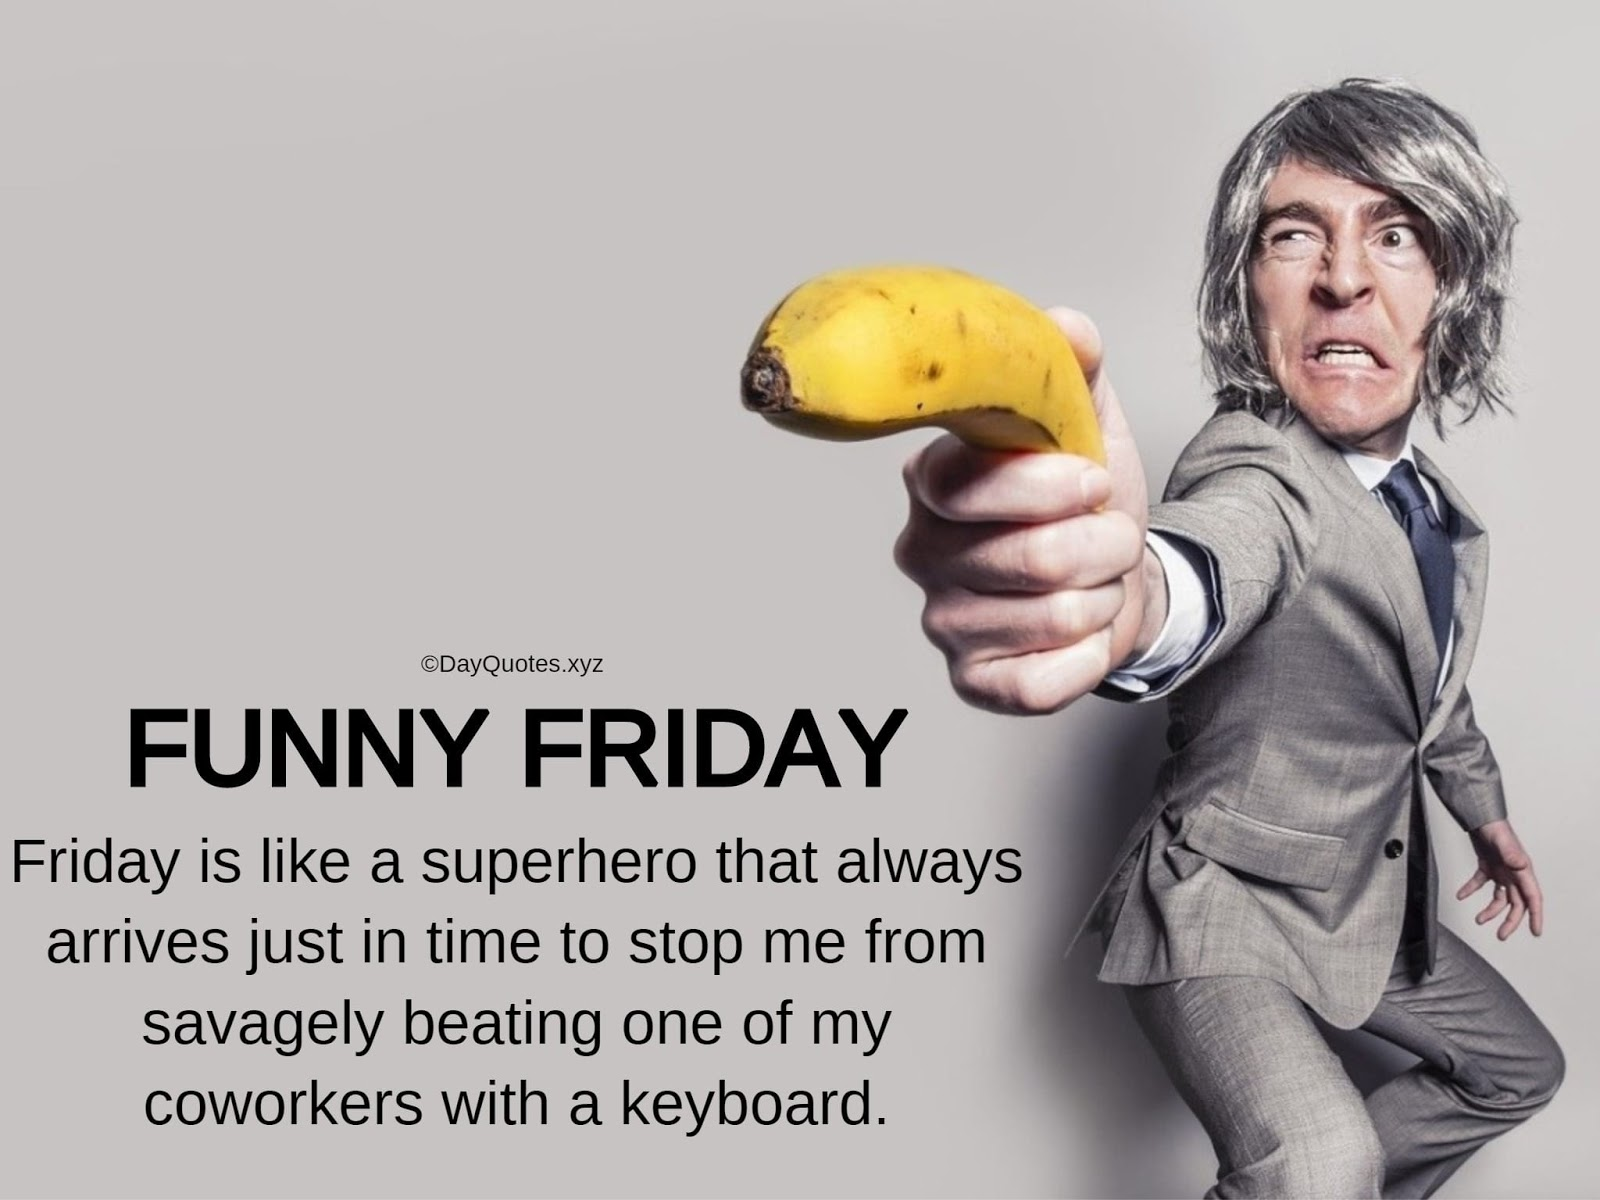 Funny Friday Quotes To Share On Social Media Profiles